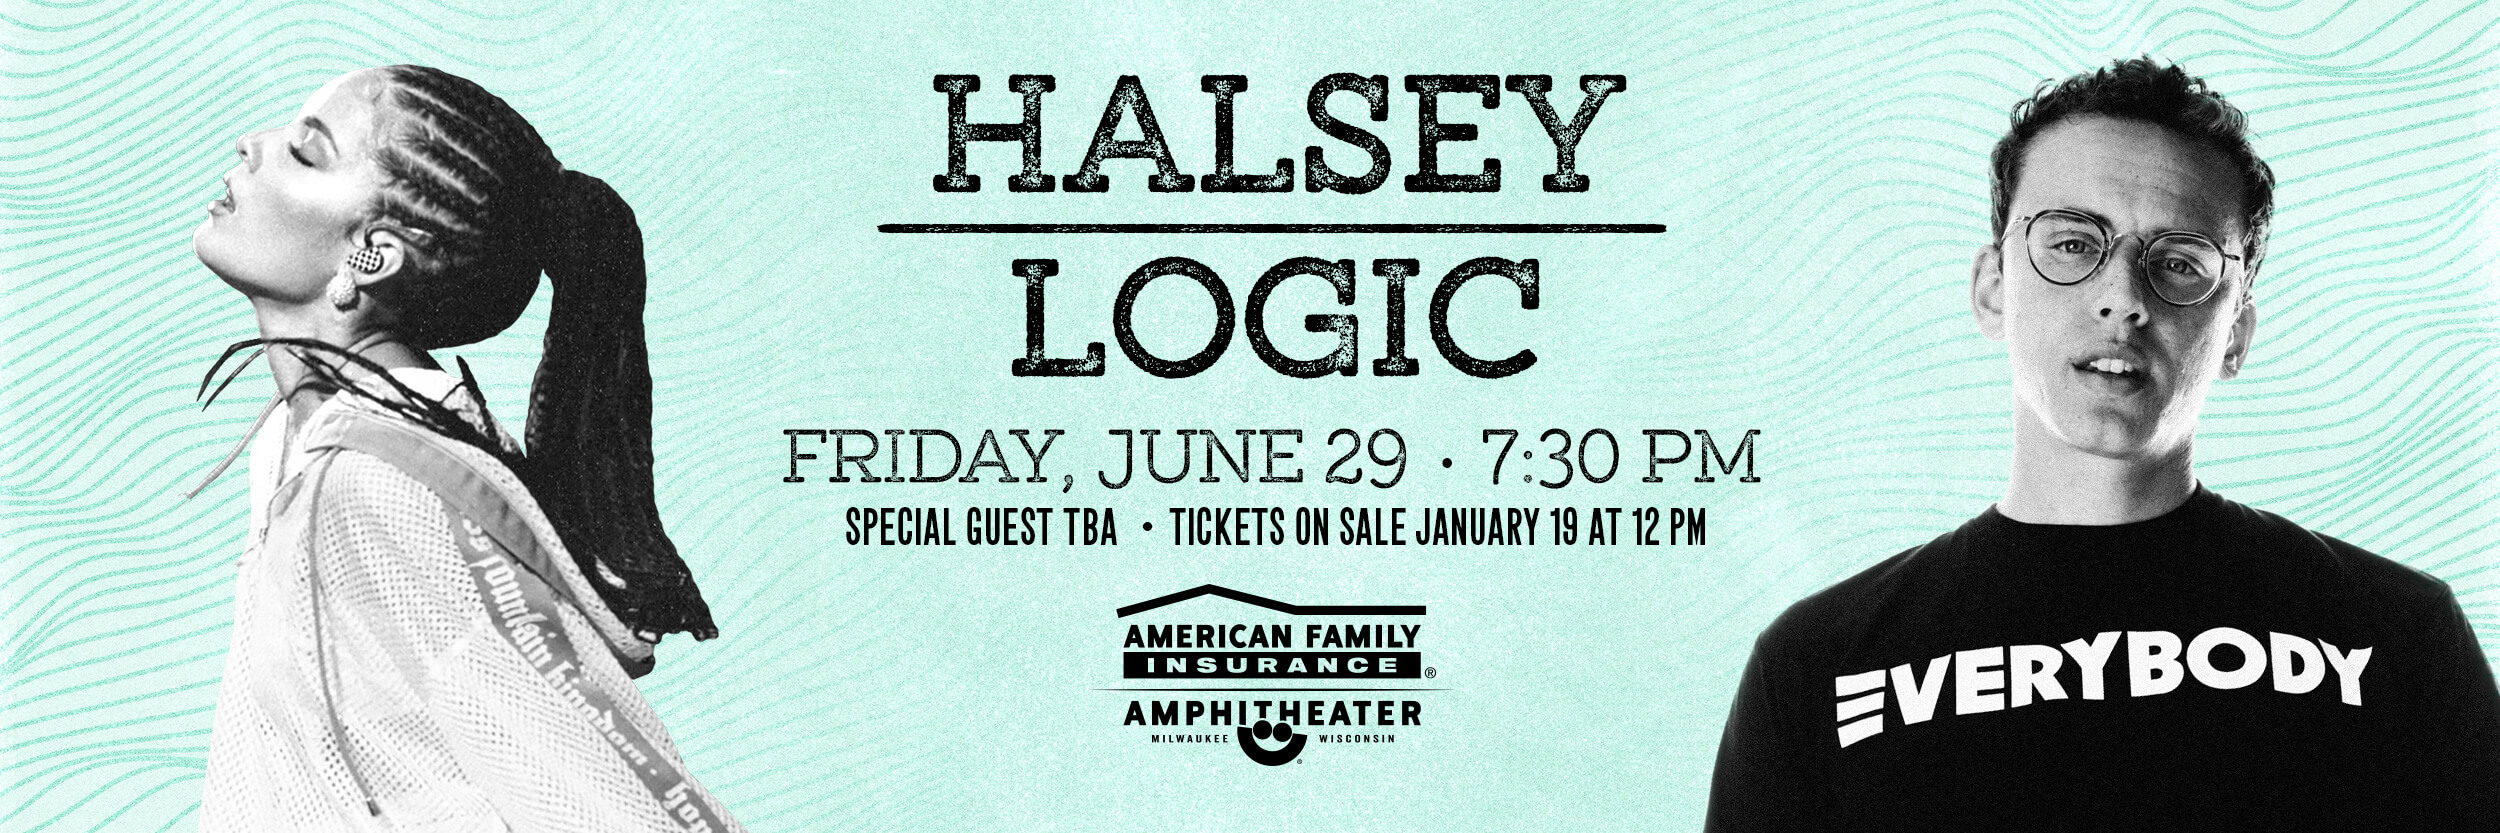 Win tickets to see Halsey & Logic at Summerfest!